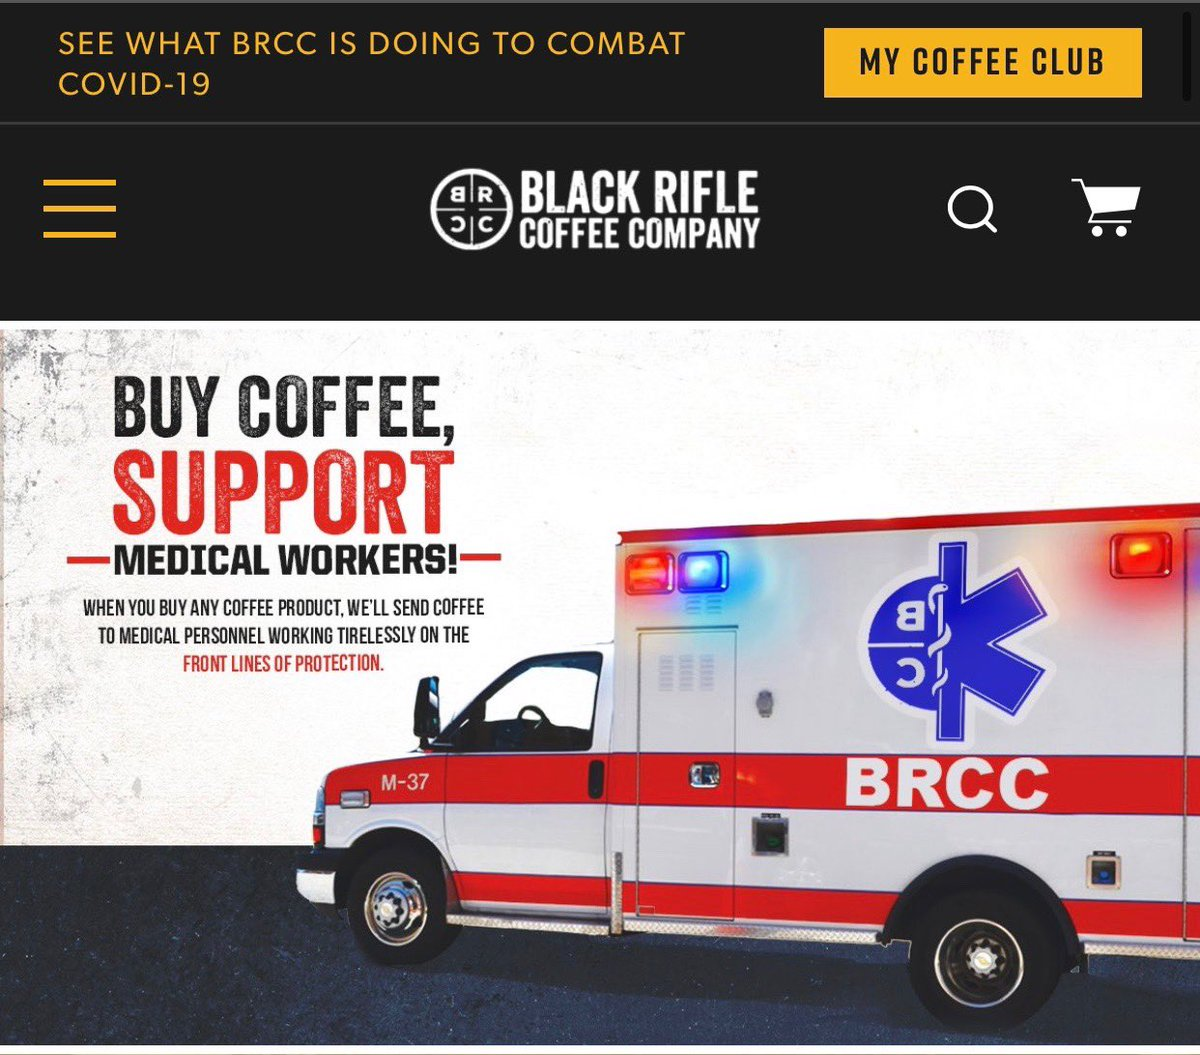 Our great partners at @blckriflecoffee are giving back to medical workers during this time. If you haven't bought anything from them yet, now is your time🔥🔥